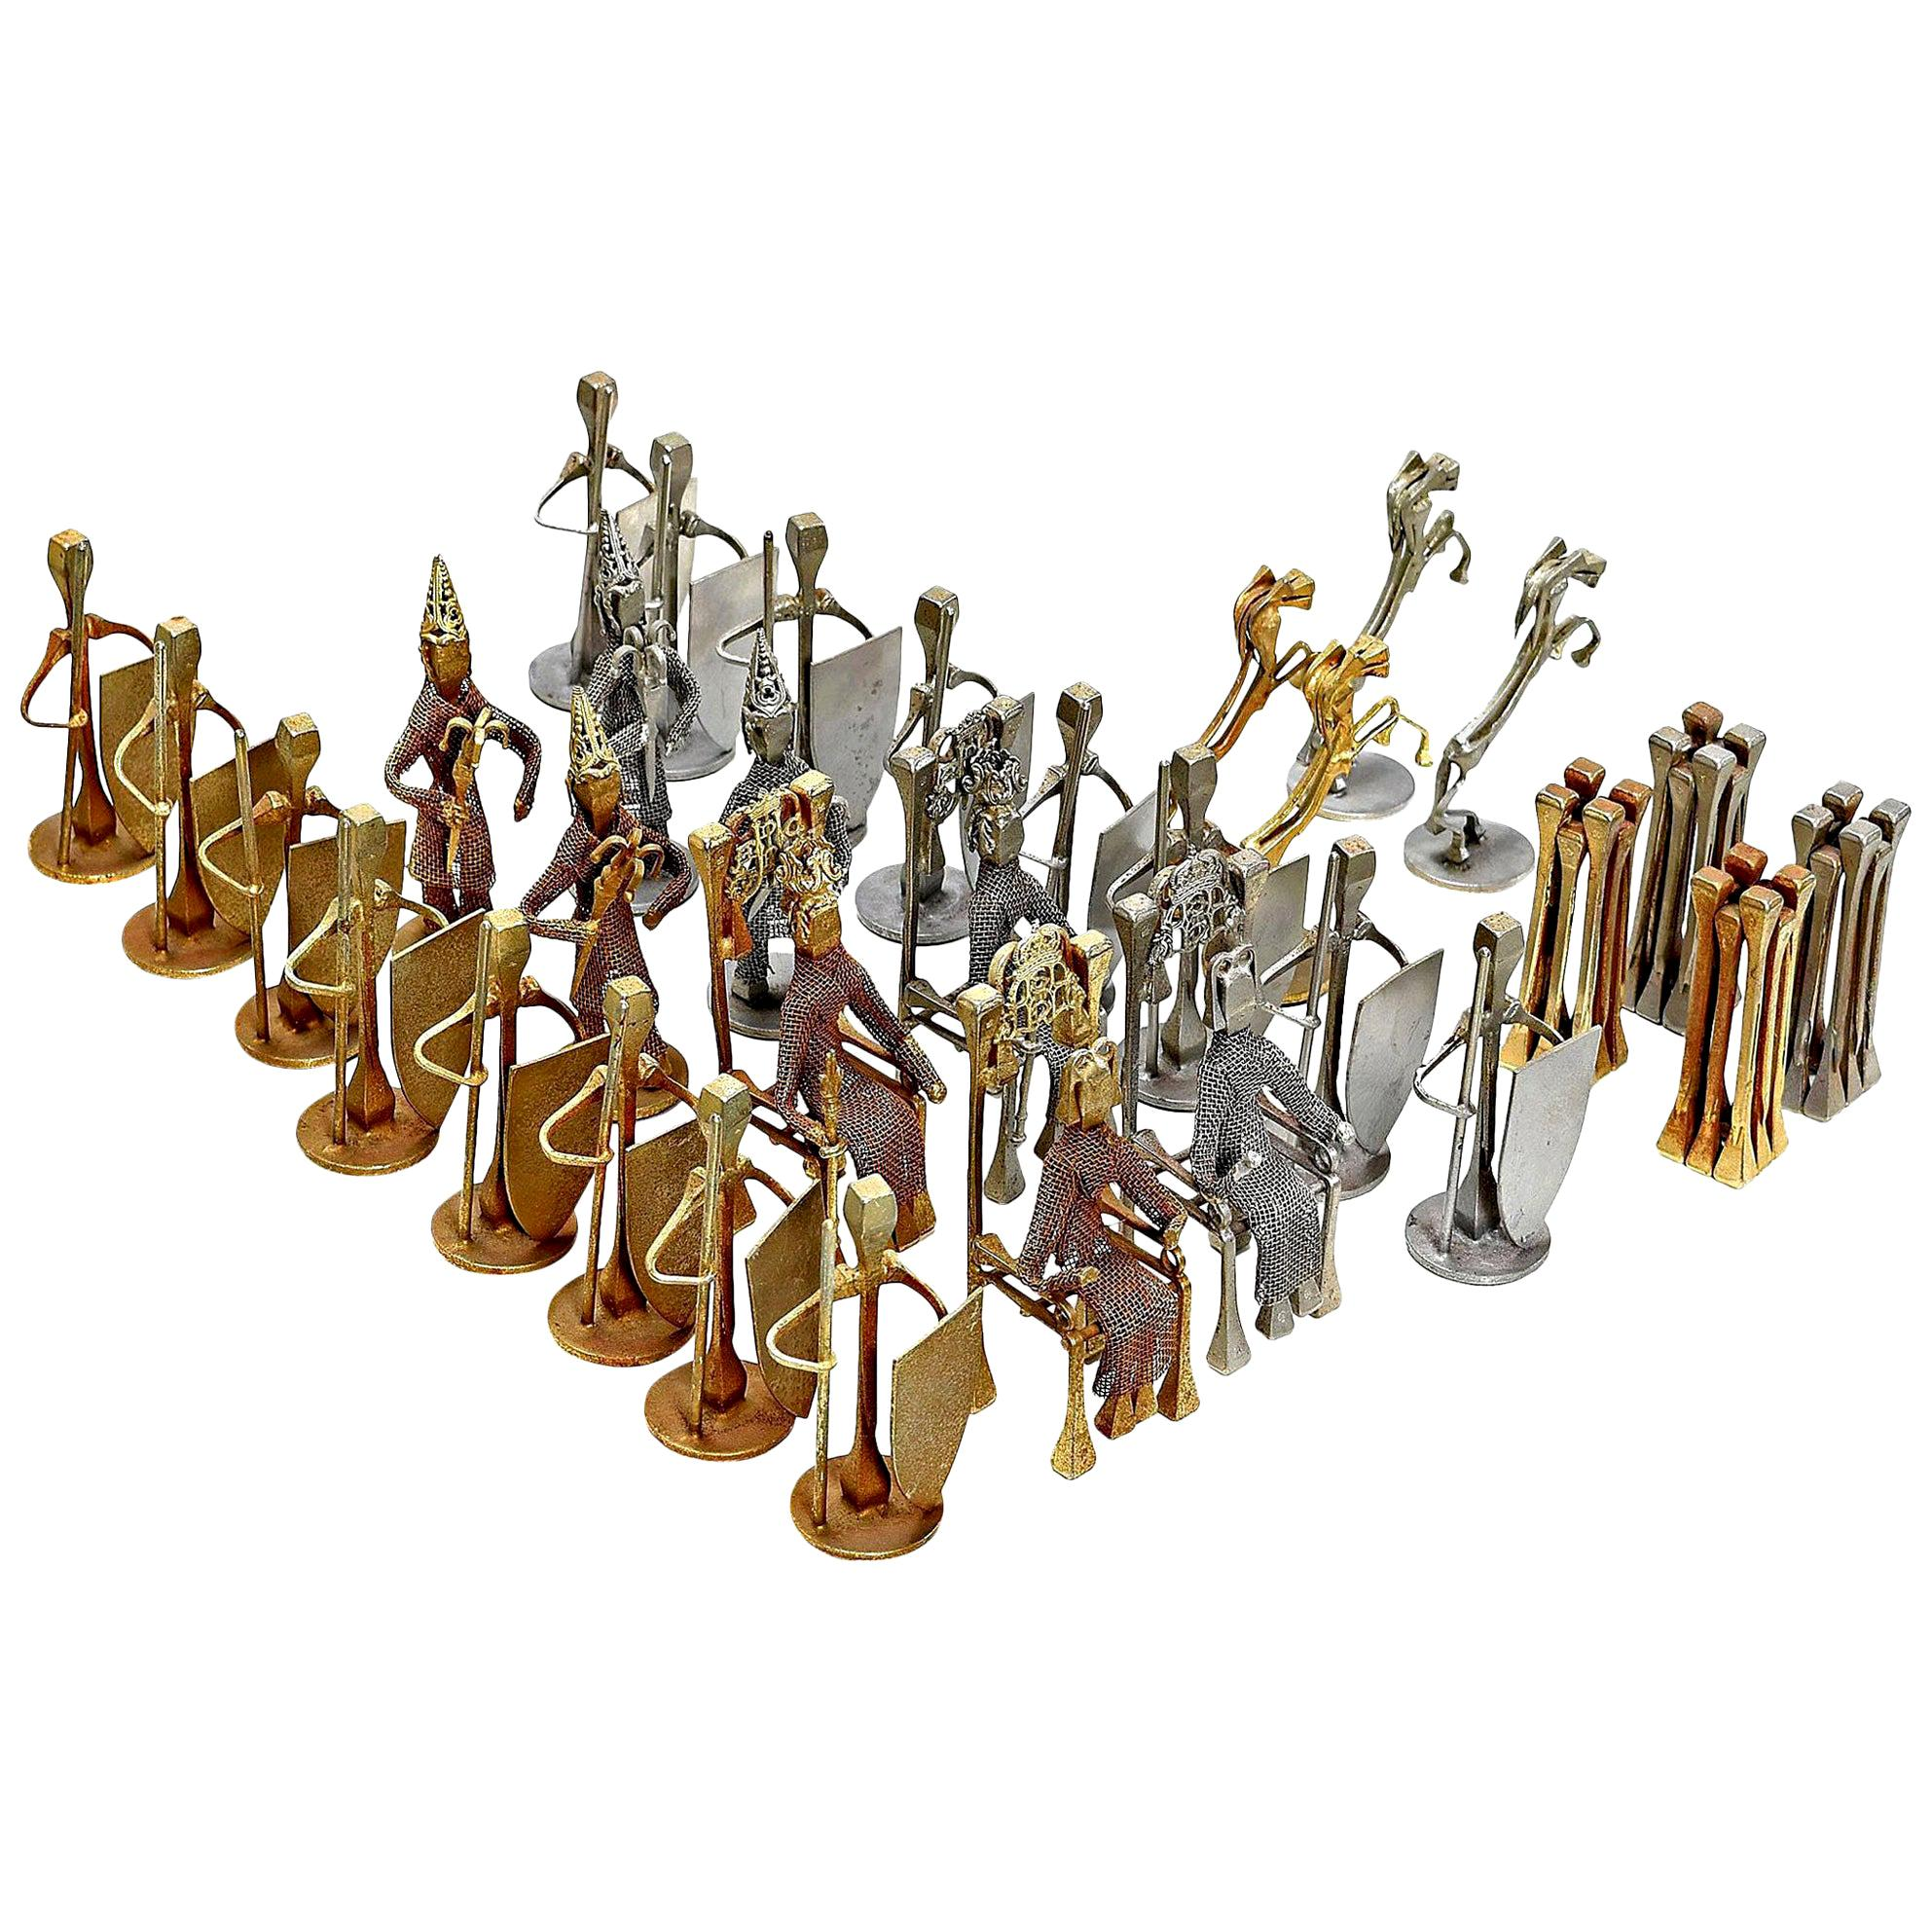 32-Piece Chess Set, Brutalist Style Handcrafted Steel Nail Silver and Bronze